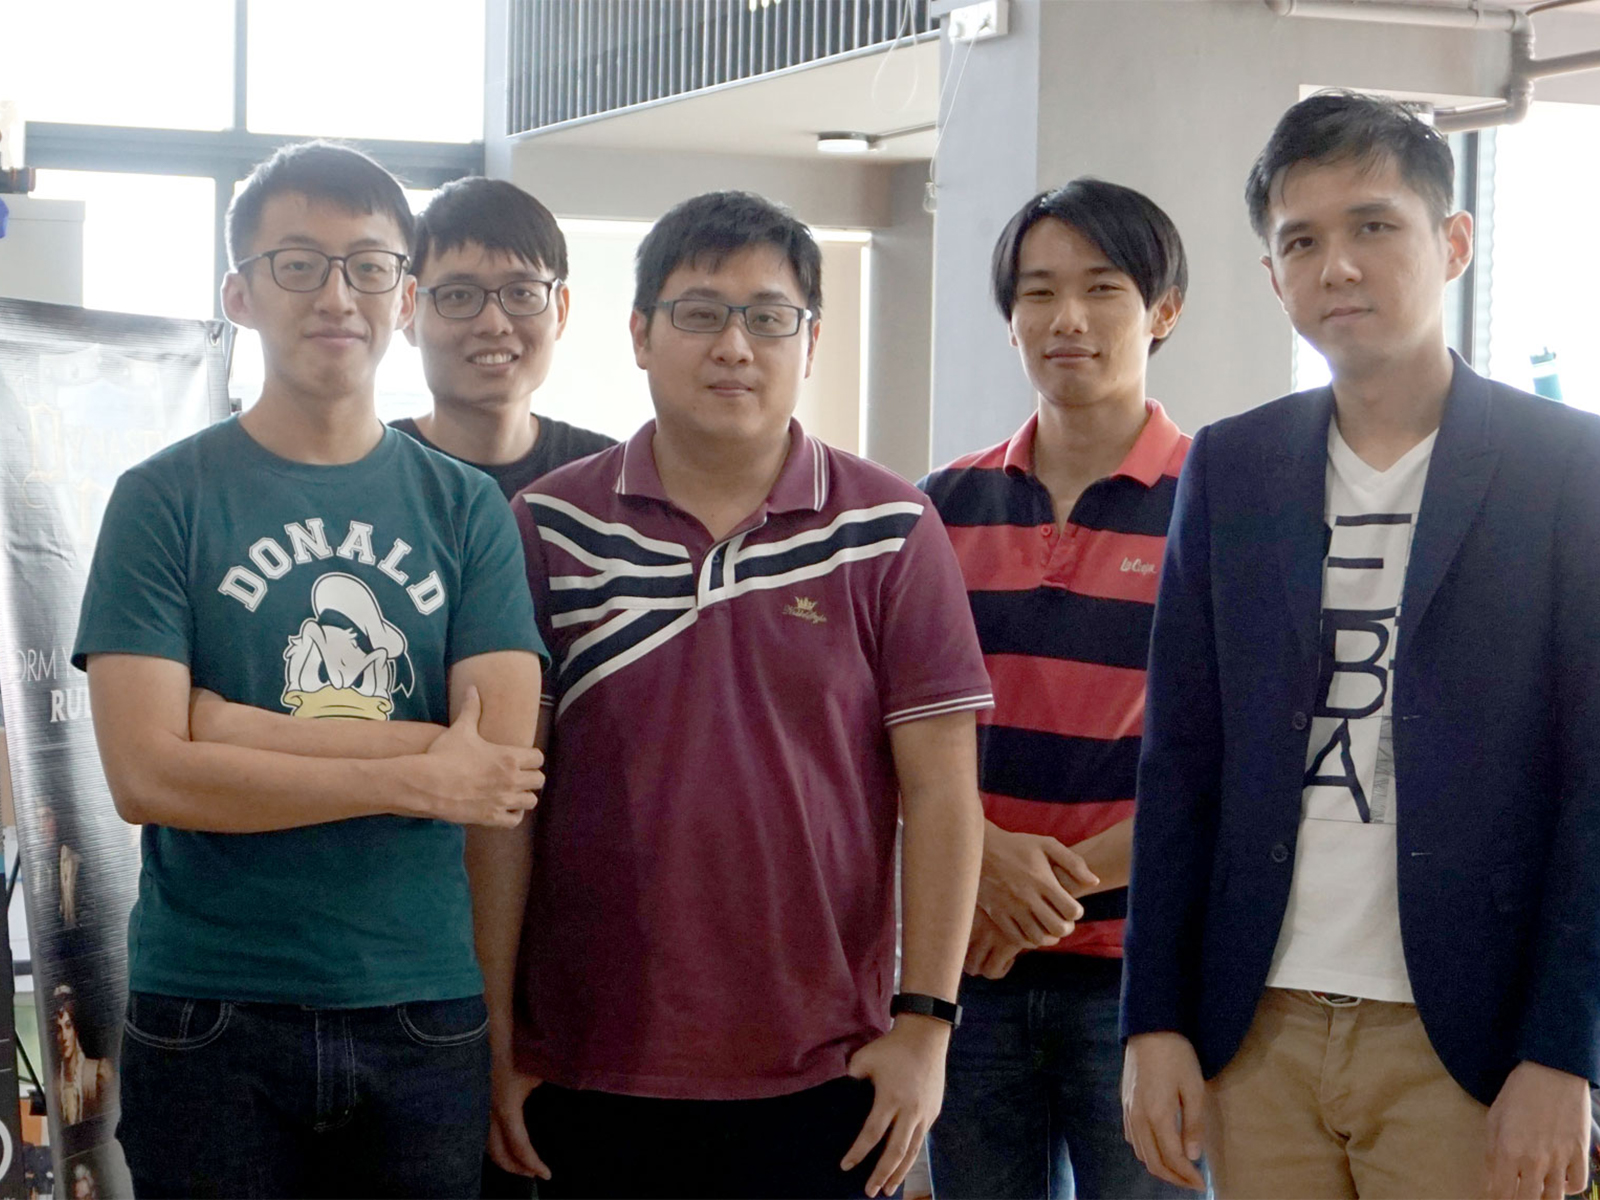 A group of DigiPen (Singapore) alumni pose next to a banner advertising the ORCA Integrated Business Operating System